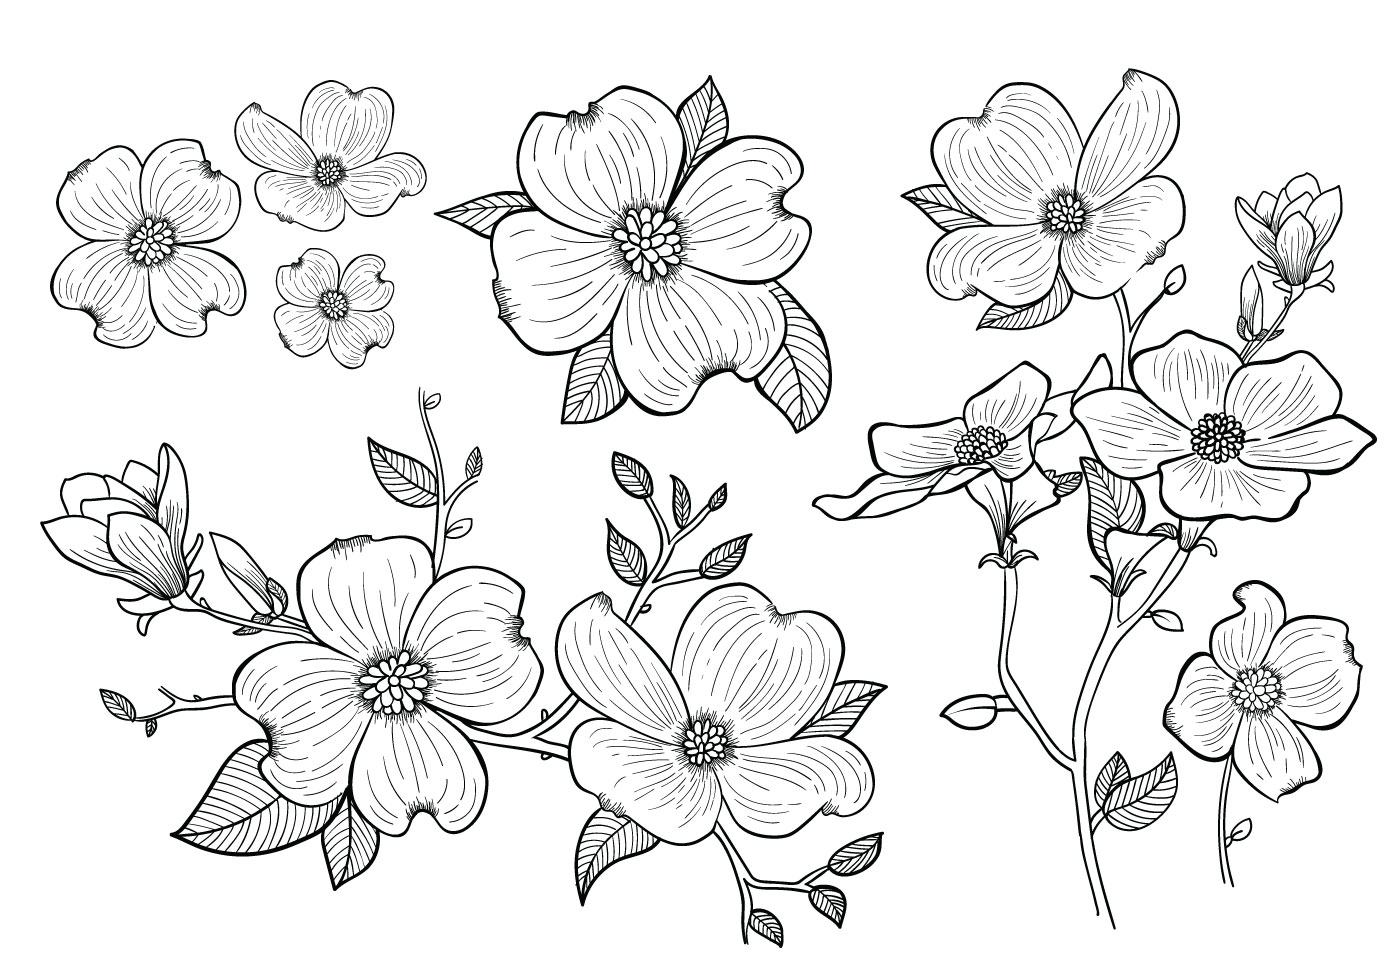 Dogwood Flower Line Drawing : Dogwood flower drawing flowers ideas for review